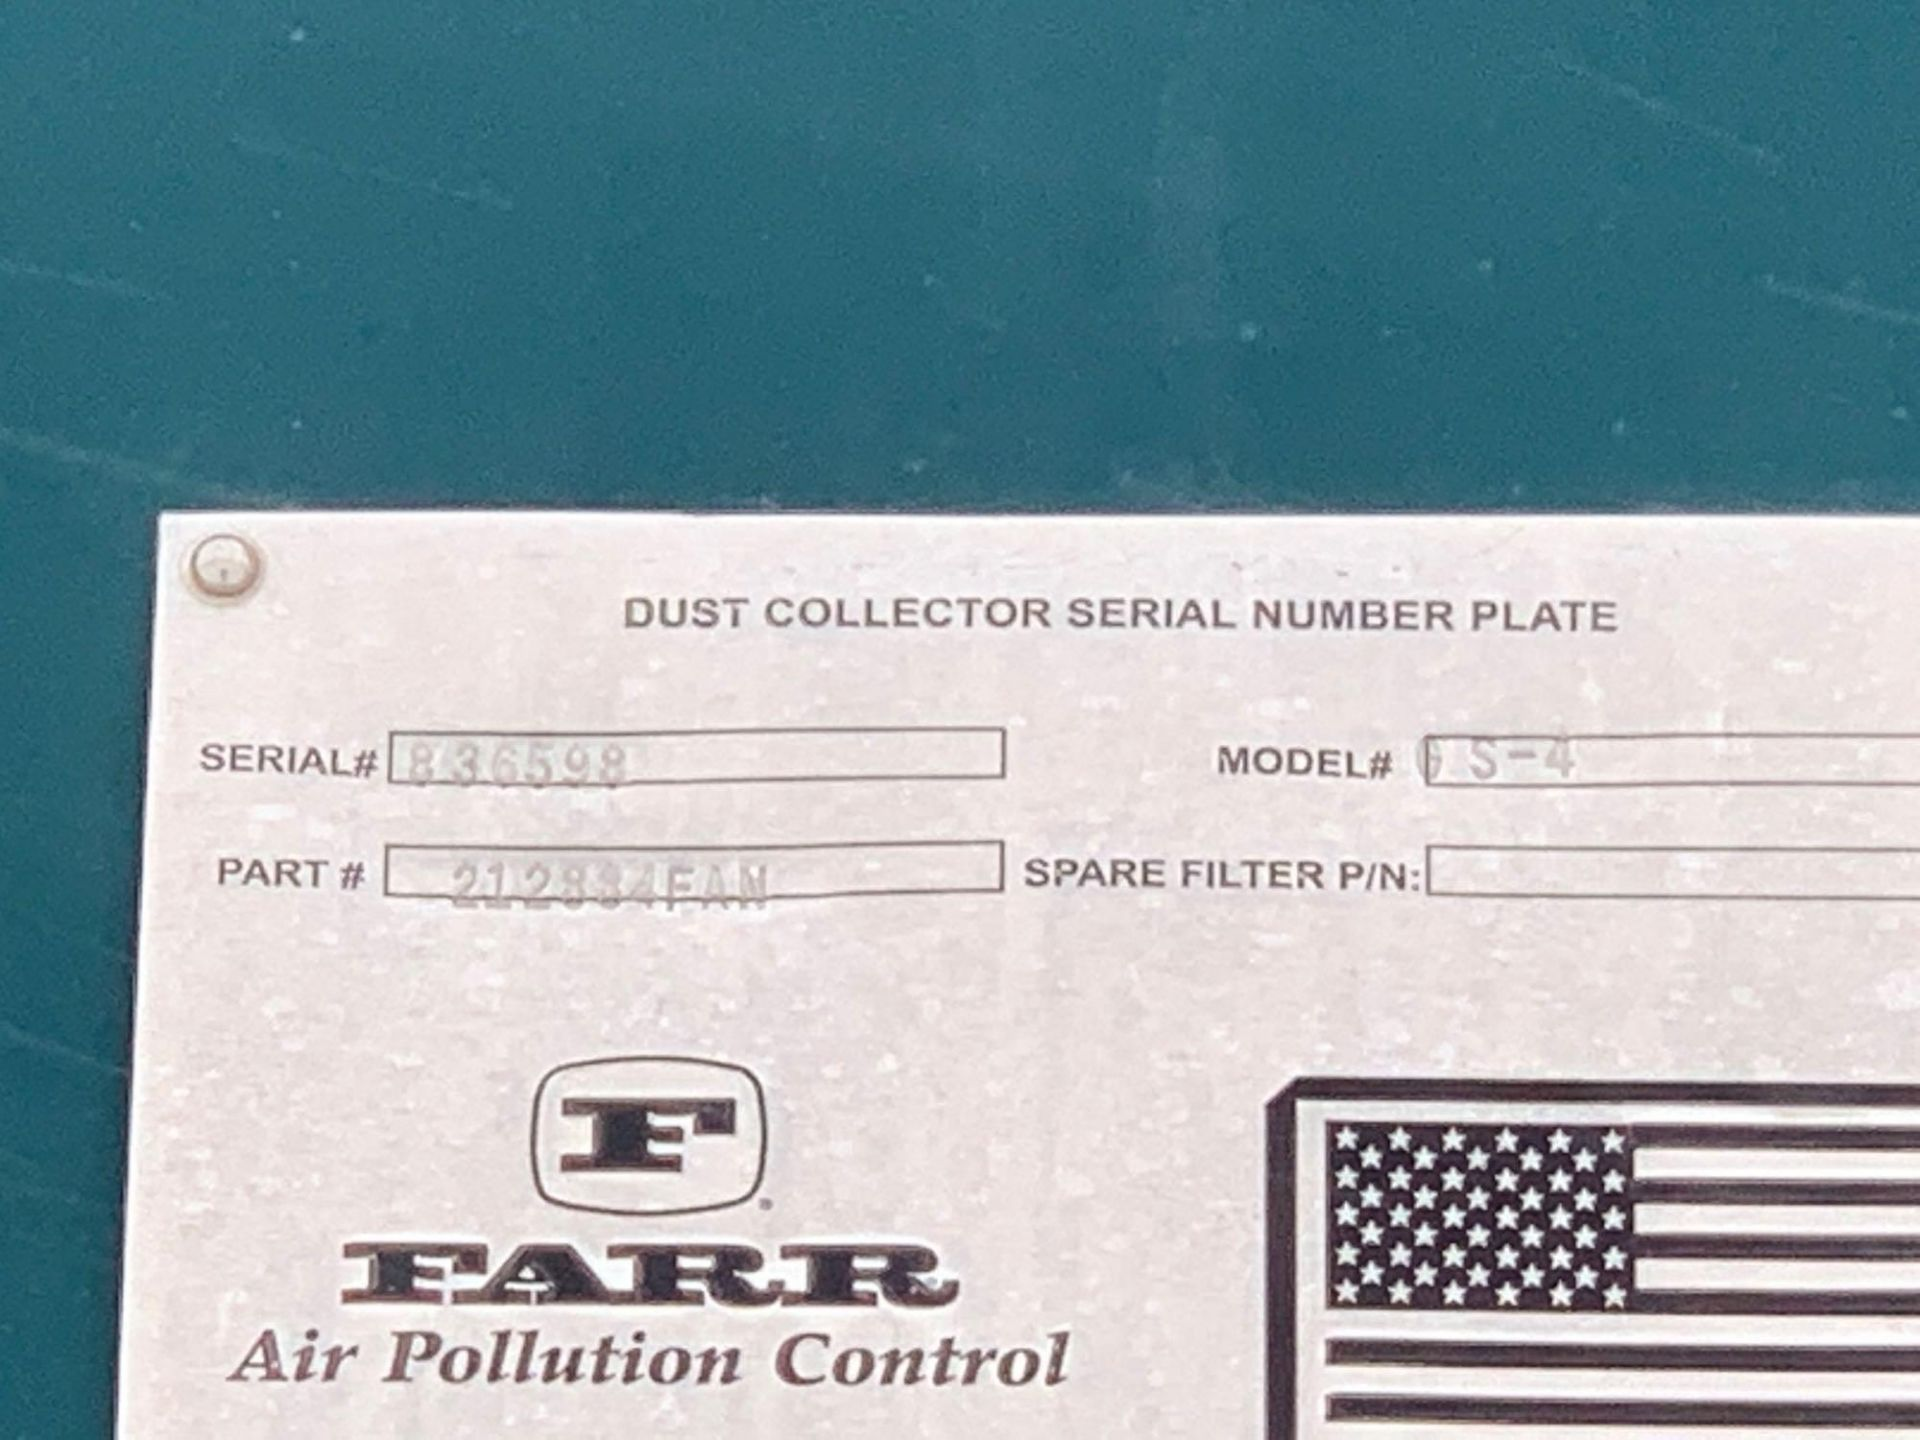 Farr Dust Collector Model GS-4 Serial Number: 836598 Part Number: 212834FAN - Image 10 of 10